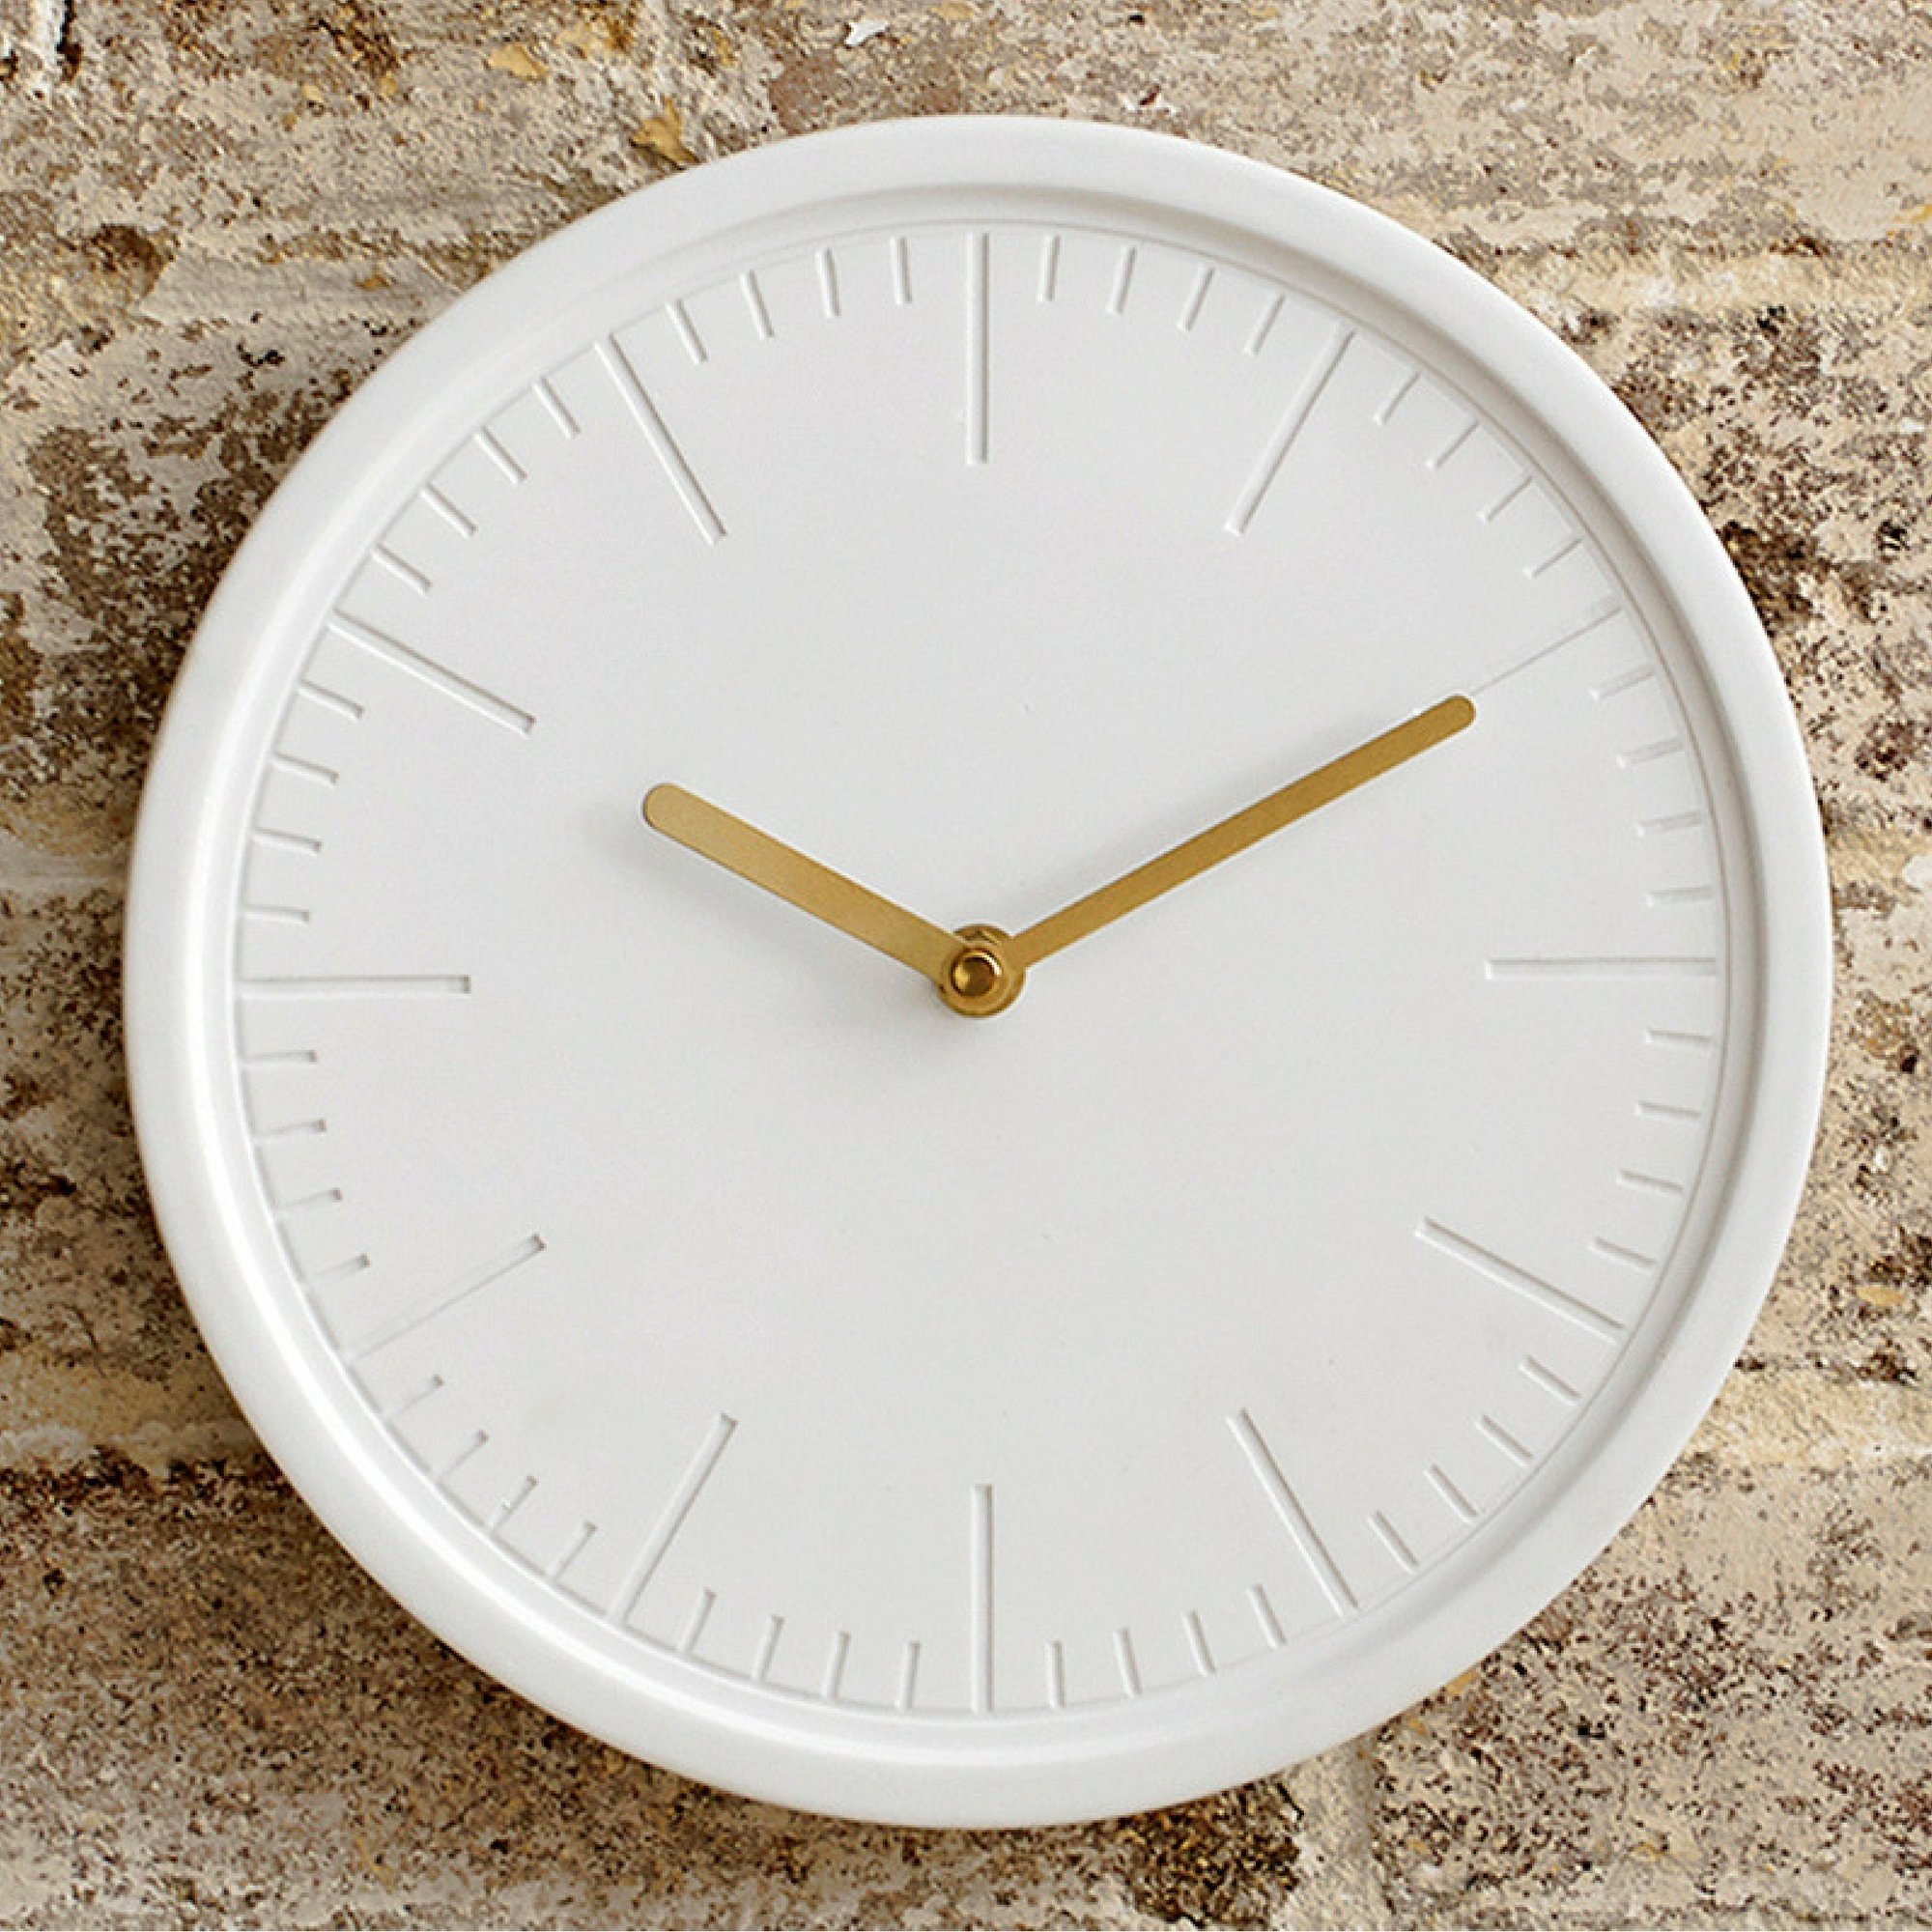 Silent Wall Clock – Ceramic Face – Decorative Modern White - Metallic Gold Hands – Round 10 Inch – Quartz Movement – Easy To Hang – Single AA Battery Powered